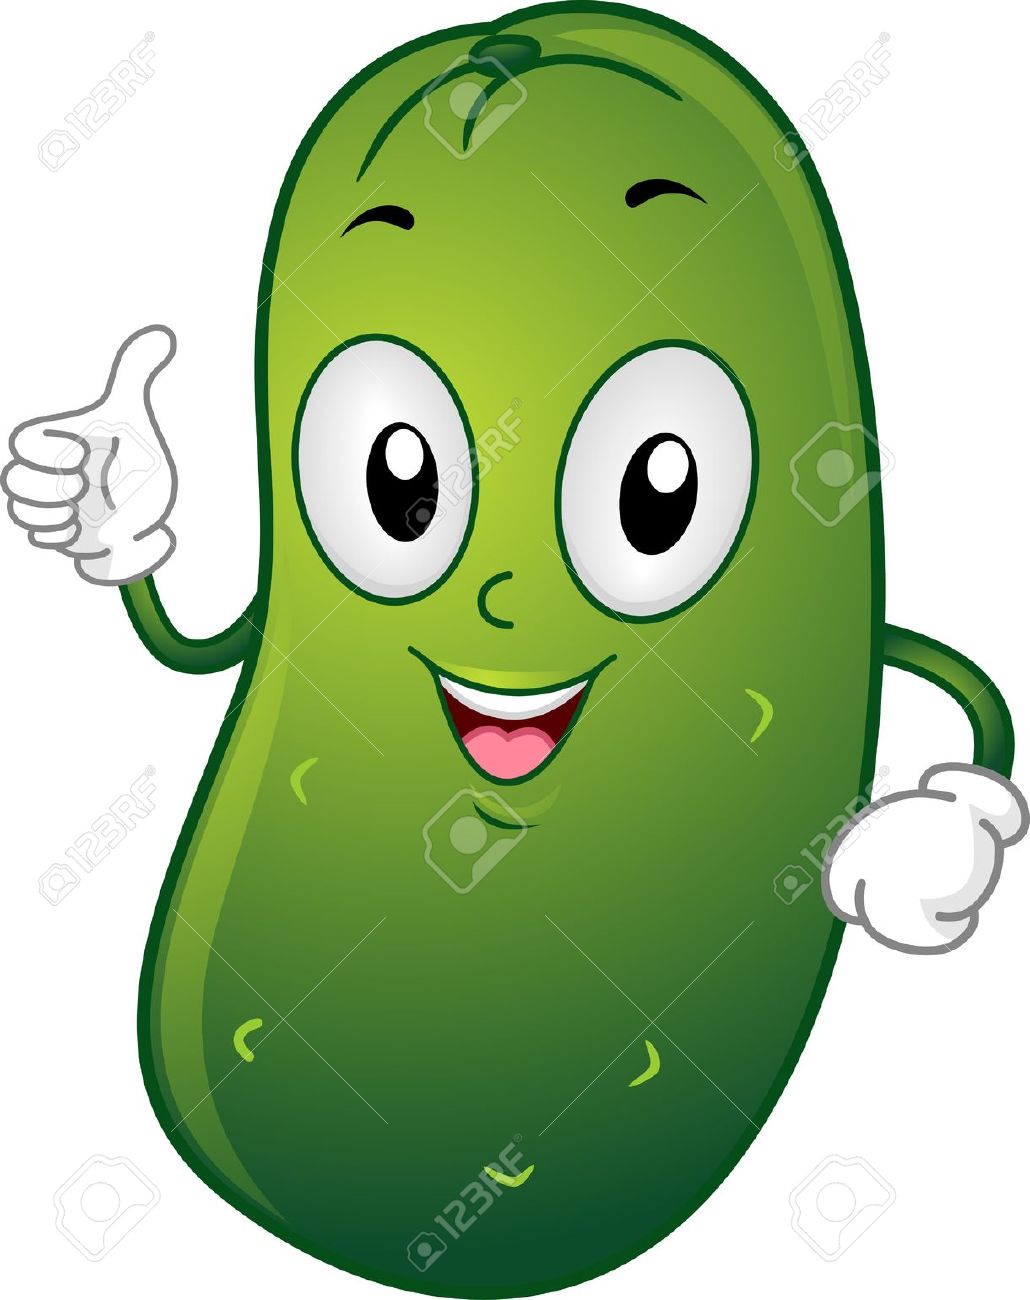 hight resolution of 1030x1300 pickle clipart cute